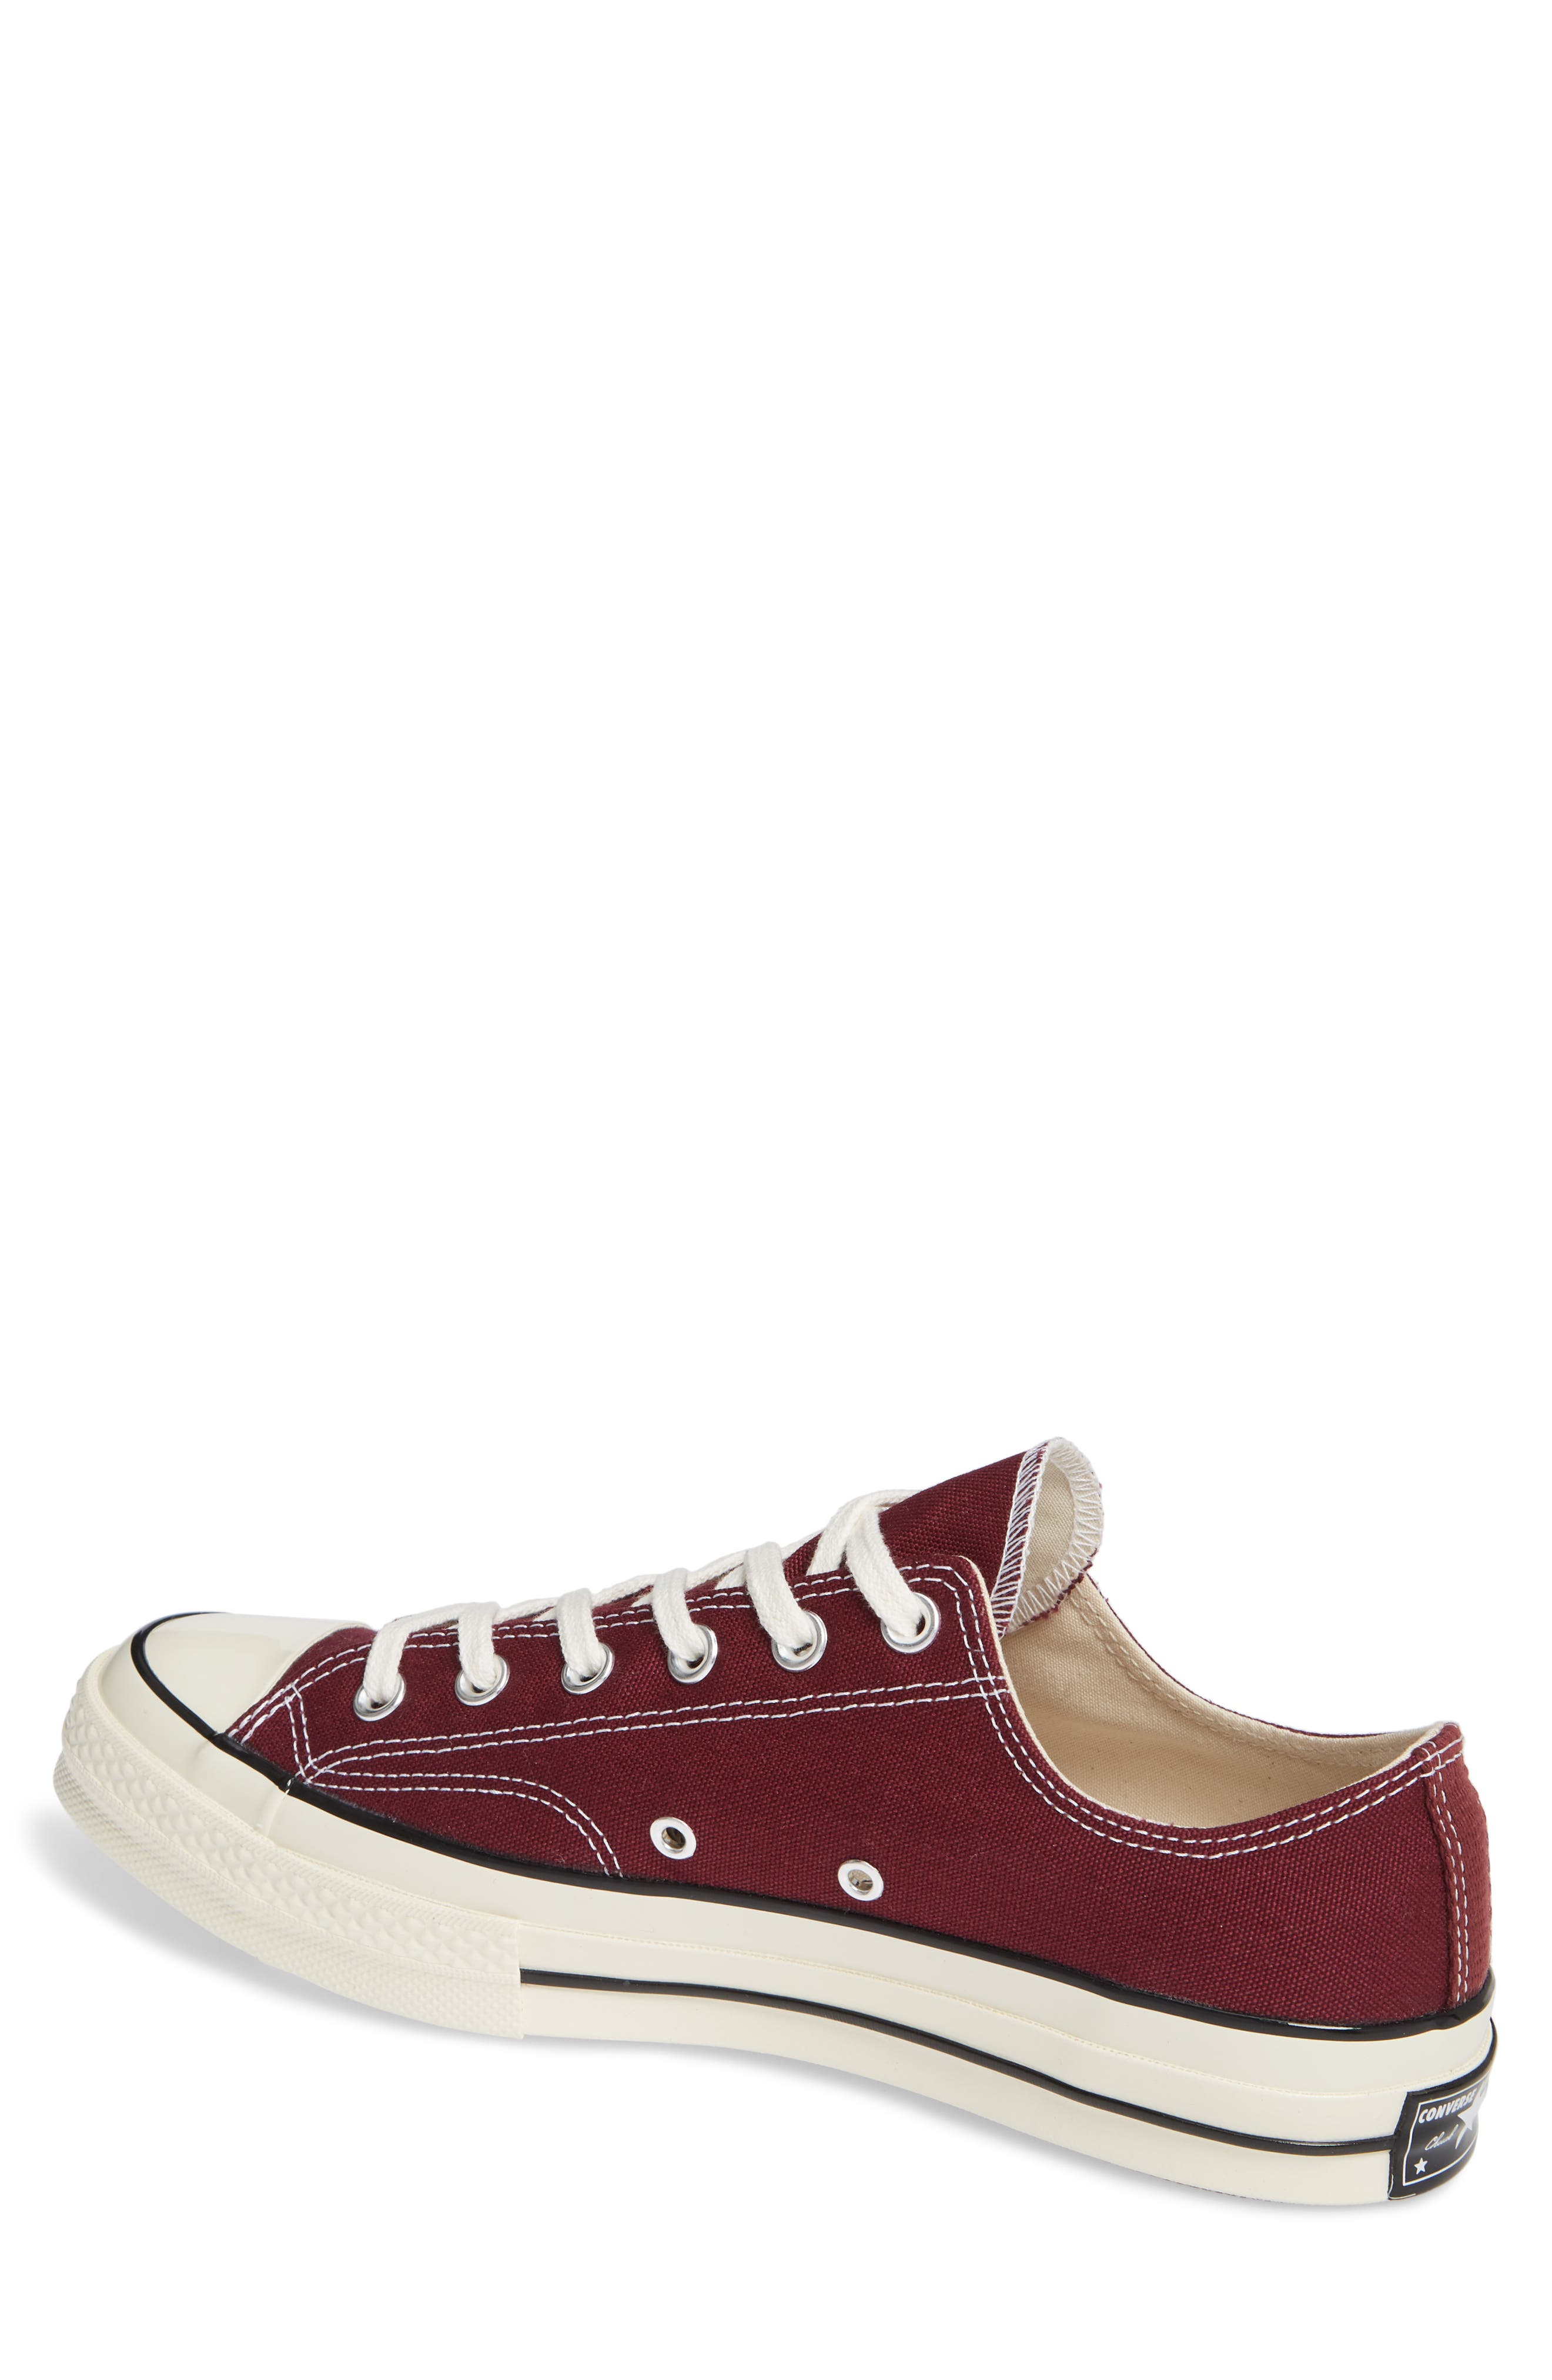 Chuck Taylor<sup>®</sup> All Star<sup>®</sup> 70 Low Top Sneaker,                             Alternate thumbnail 2, color,                             BURGUNDY